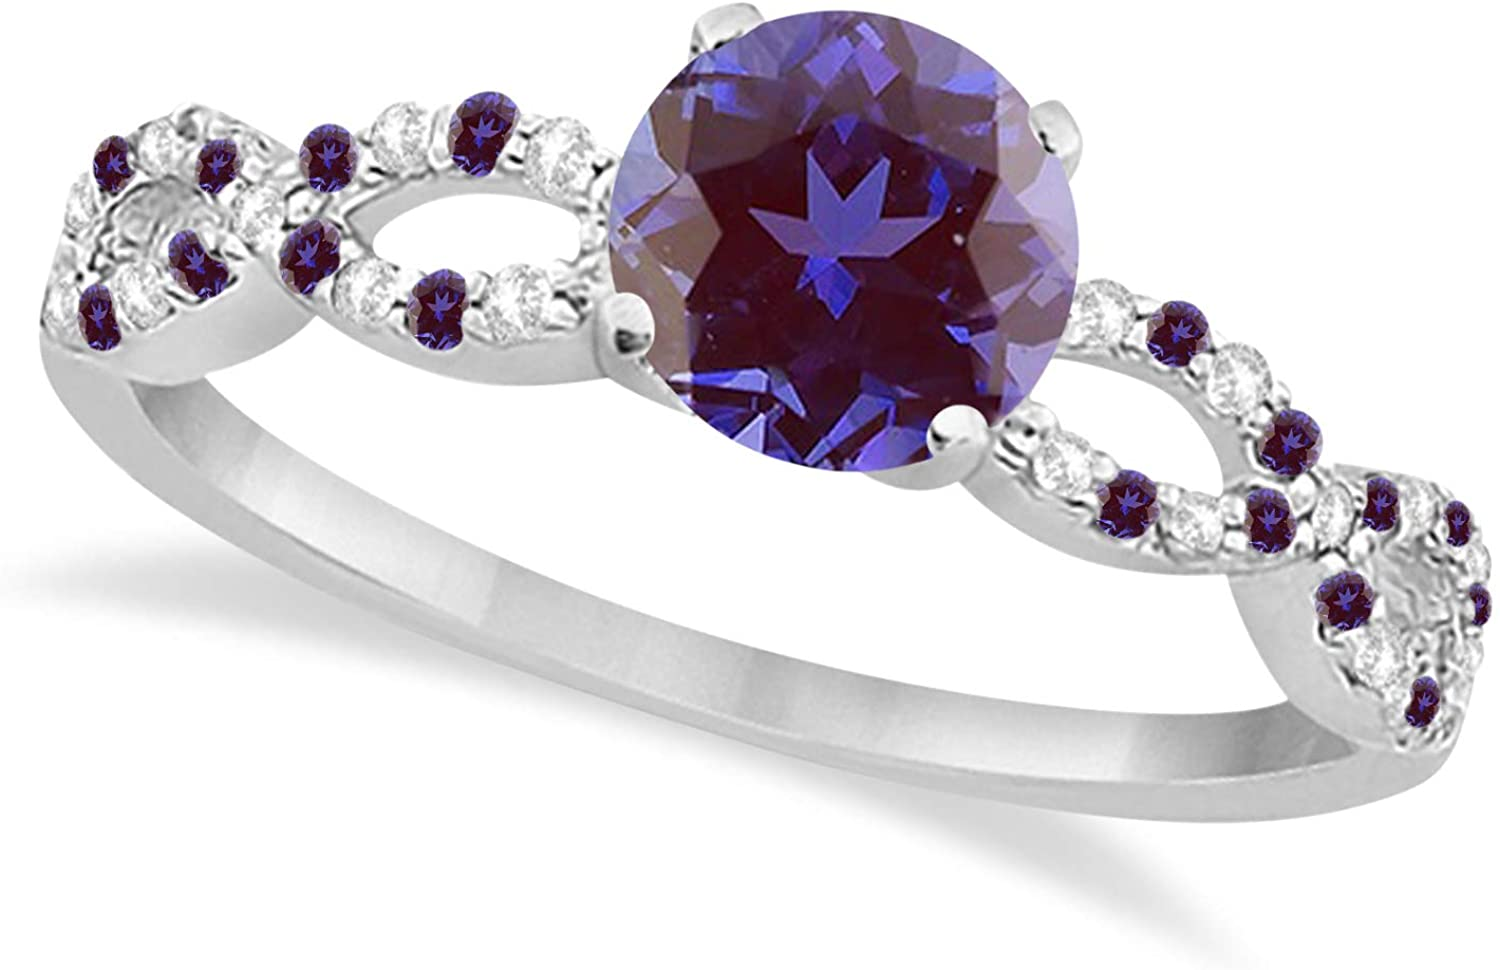 Women?s Infinity Alexandrite and Diamond Engagement Ring w/Side Stone Accents Palladium 1.45ct